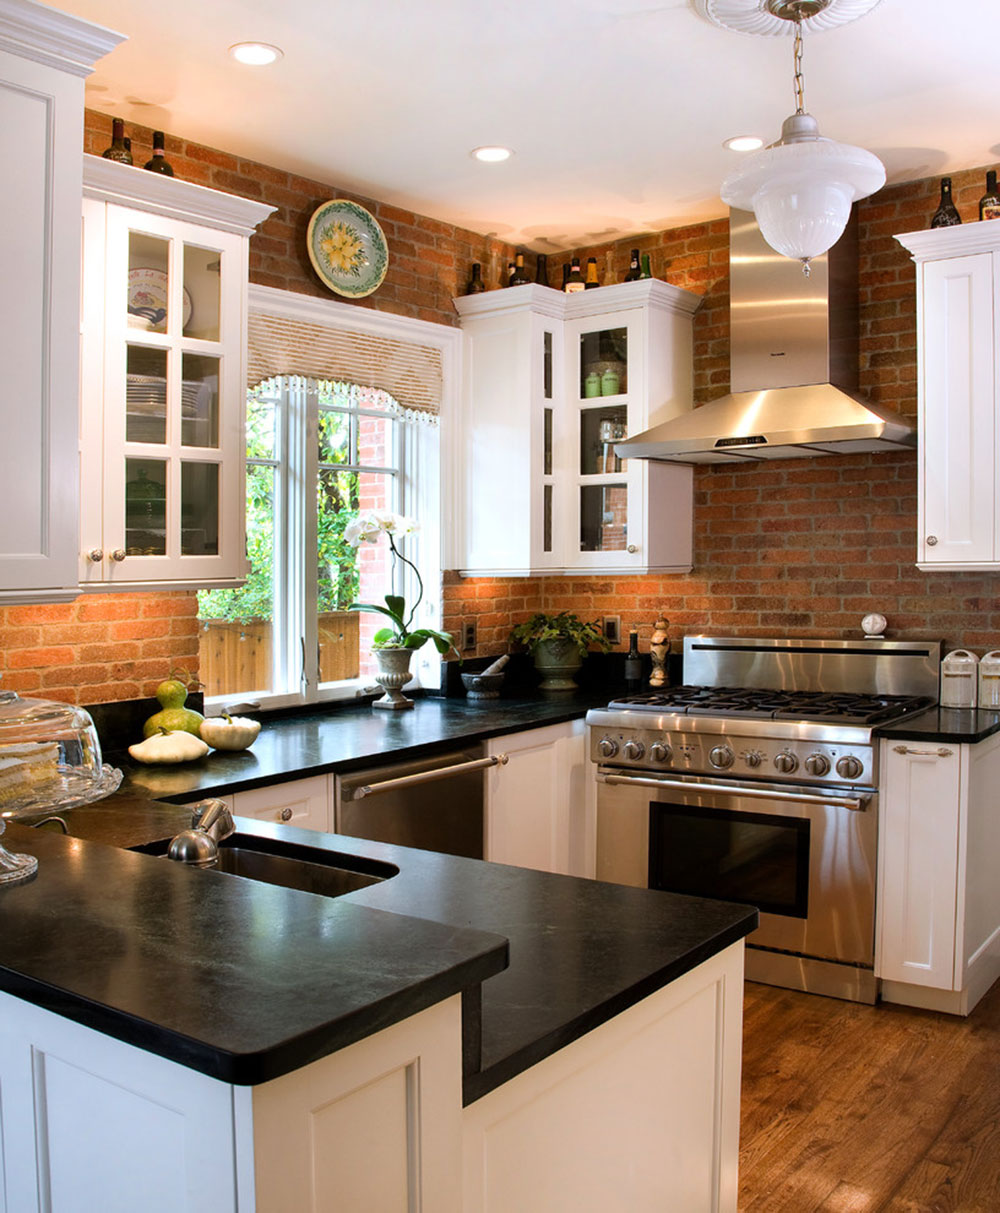 Modern Kitchen Backsplash Ideas14 Modern Brick Backsplash Kitchen Ideas